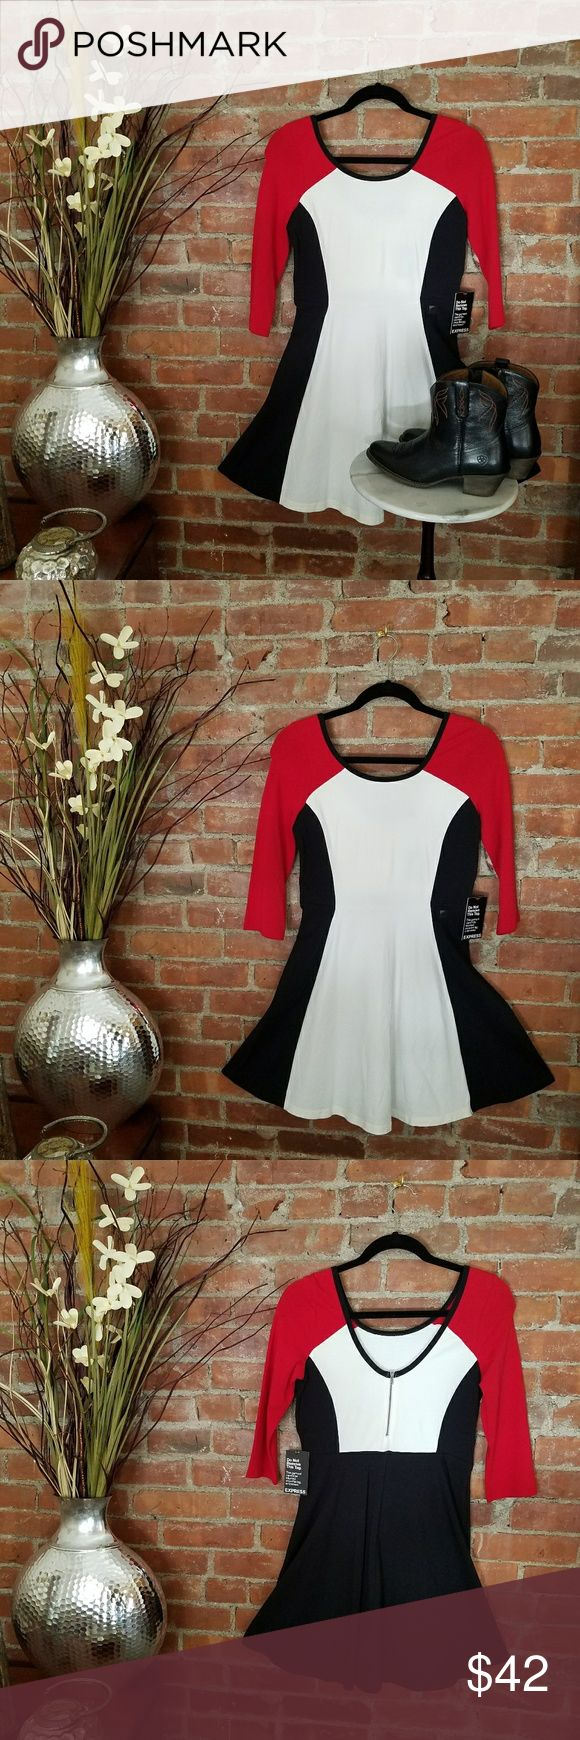 NWT EXPRESS Dress A bold color block skater dress!  Hmmm....dress flats,  patent heels and patent belt or super casual with black chucks!  So many possibilities!   How will you wear it?!  Do you like the boots too, available in a separate listing?!  Check them out! Express Dresses Midi